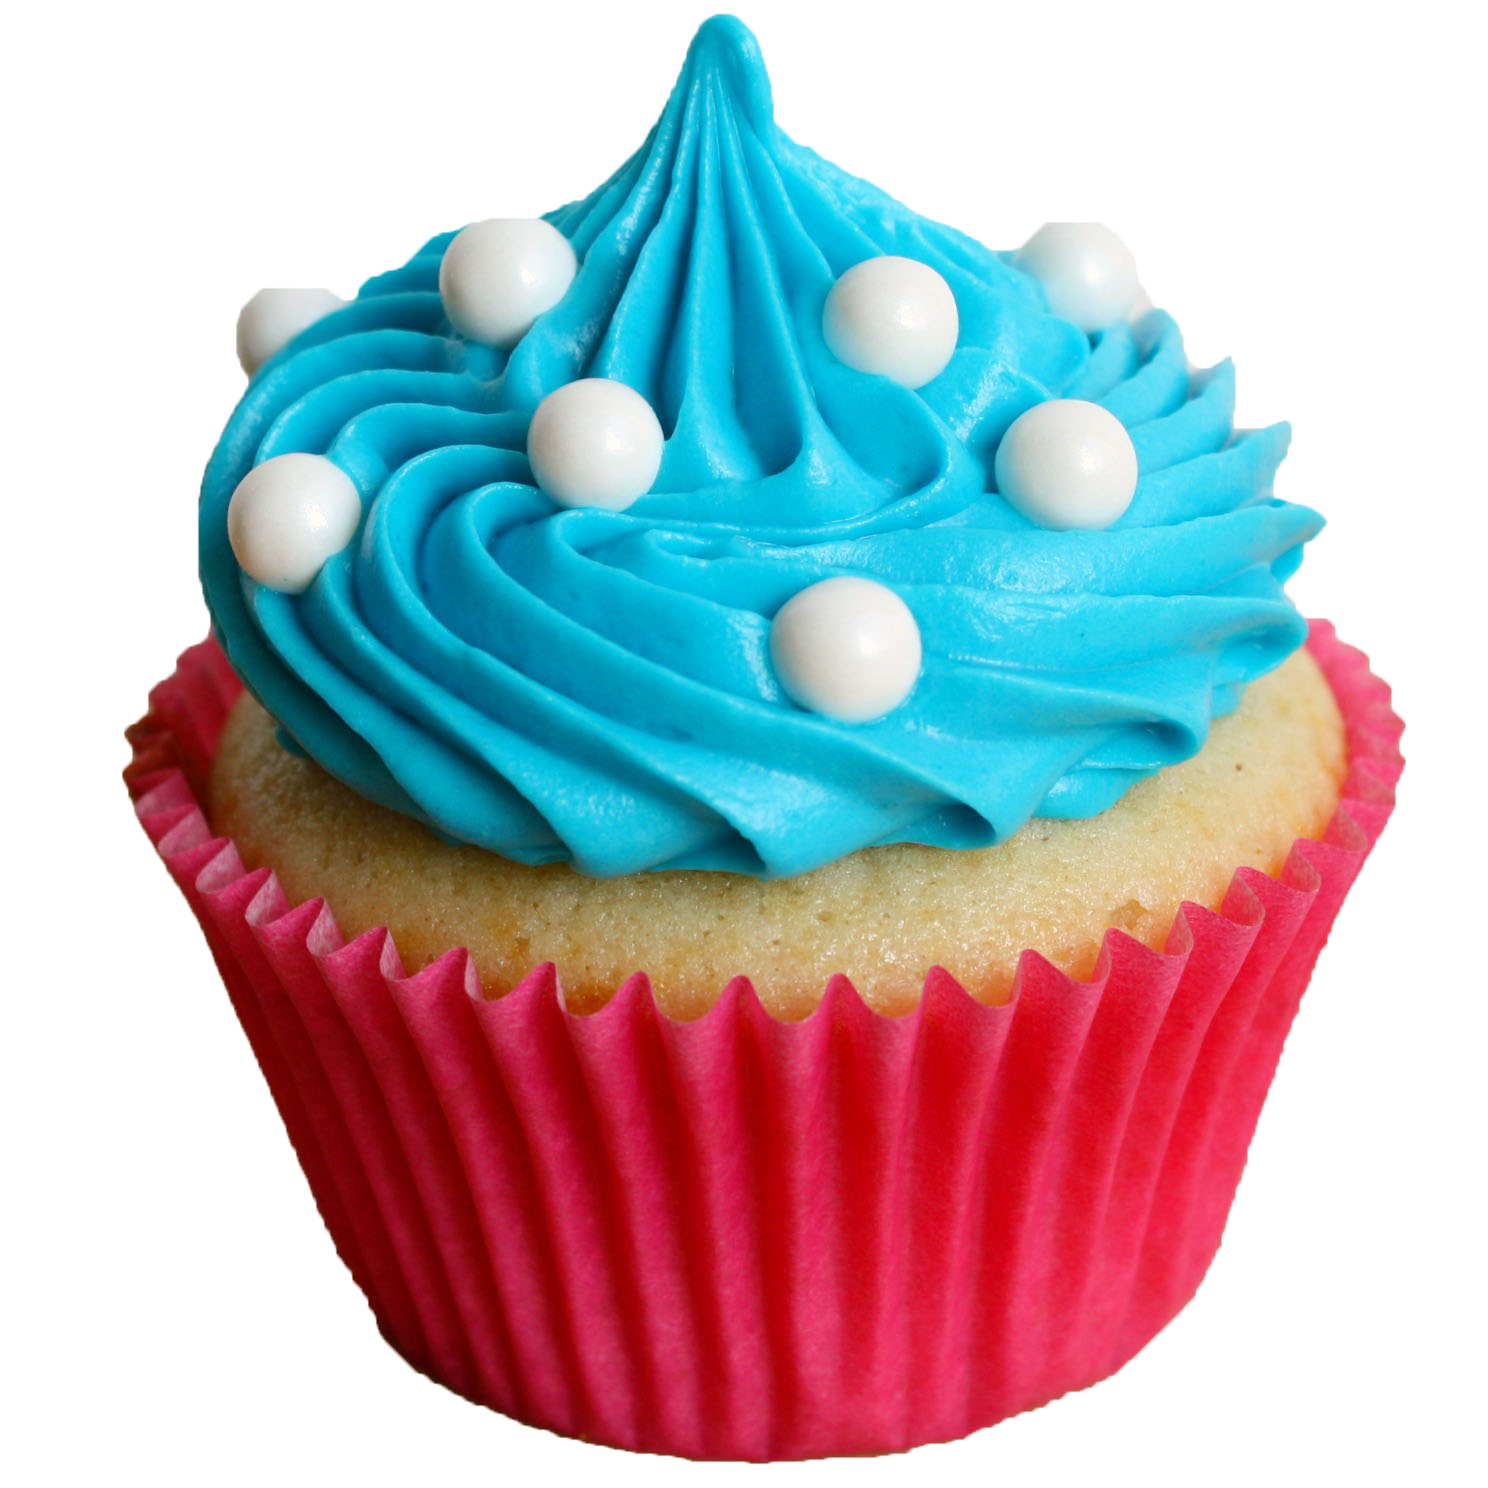 Cupcakes PNG HD - 126960